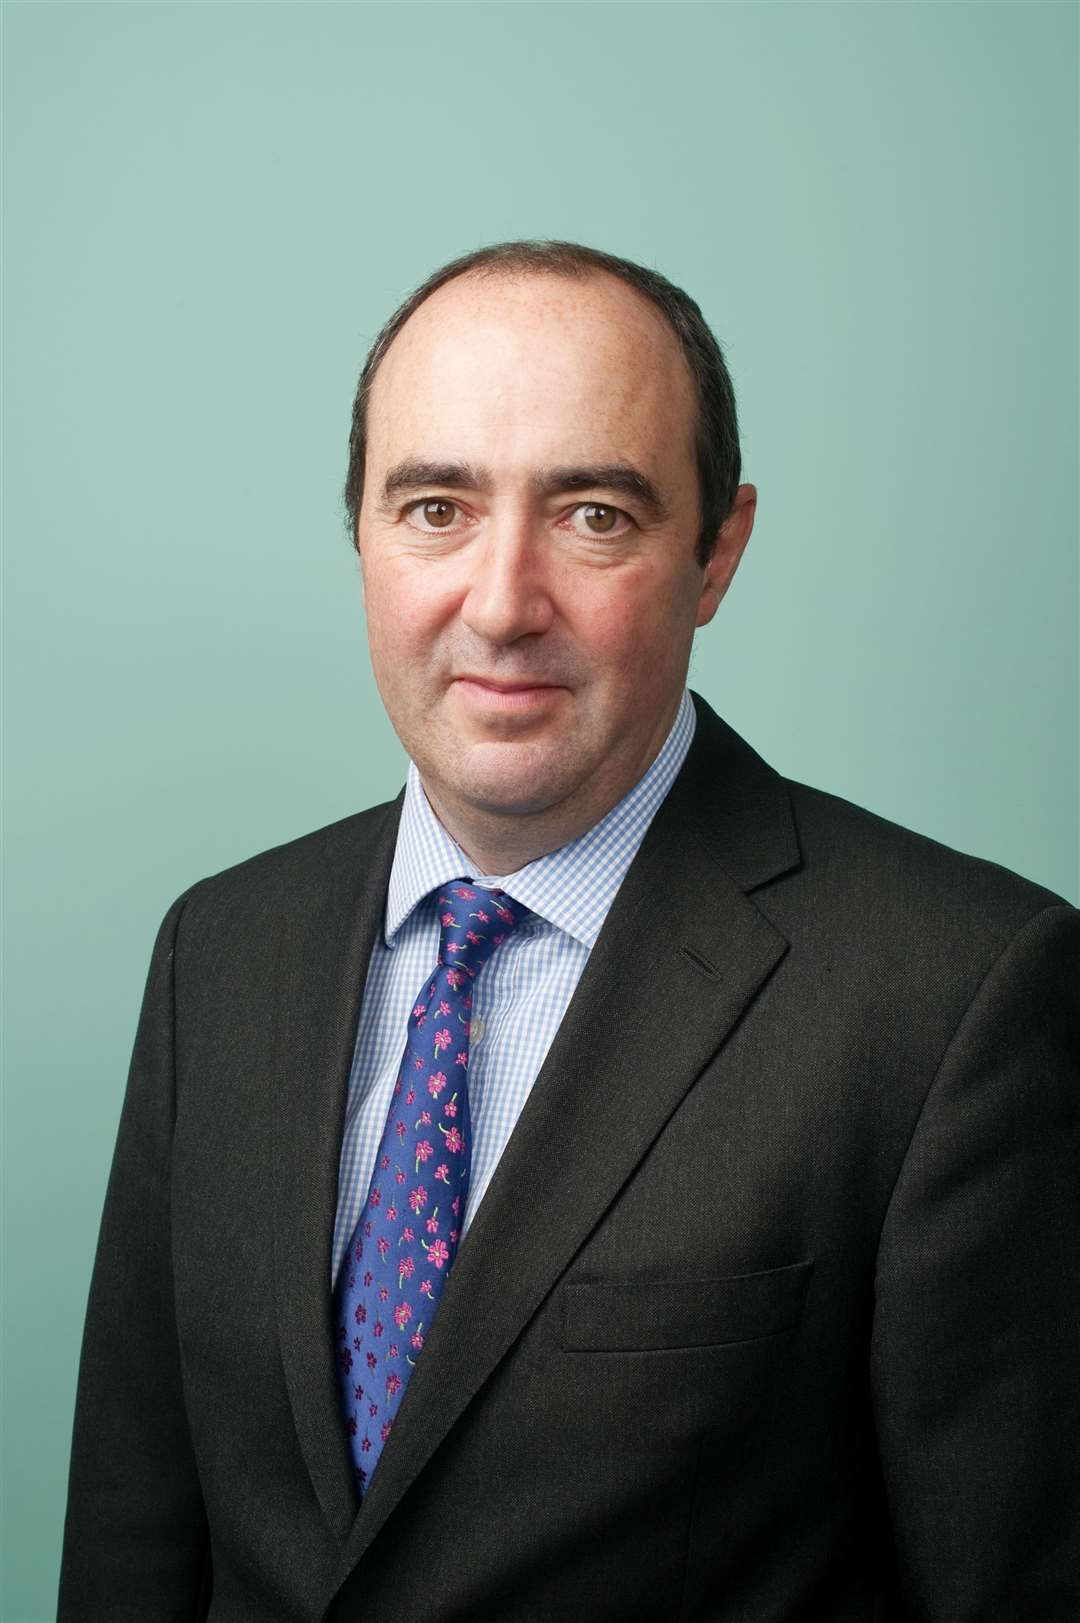 Nick Finlayson-Brown, head of office in Cambridge for law firm Mills & Reeve, and Cambridge BID board member (6502947)